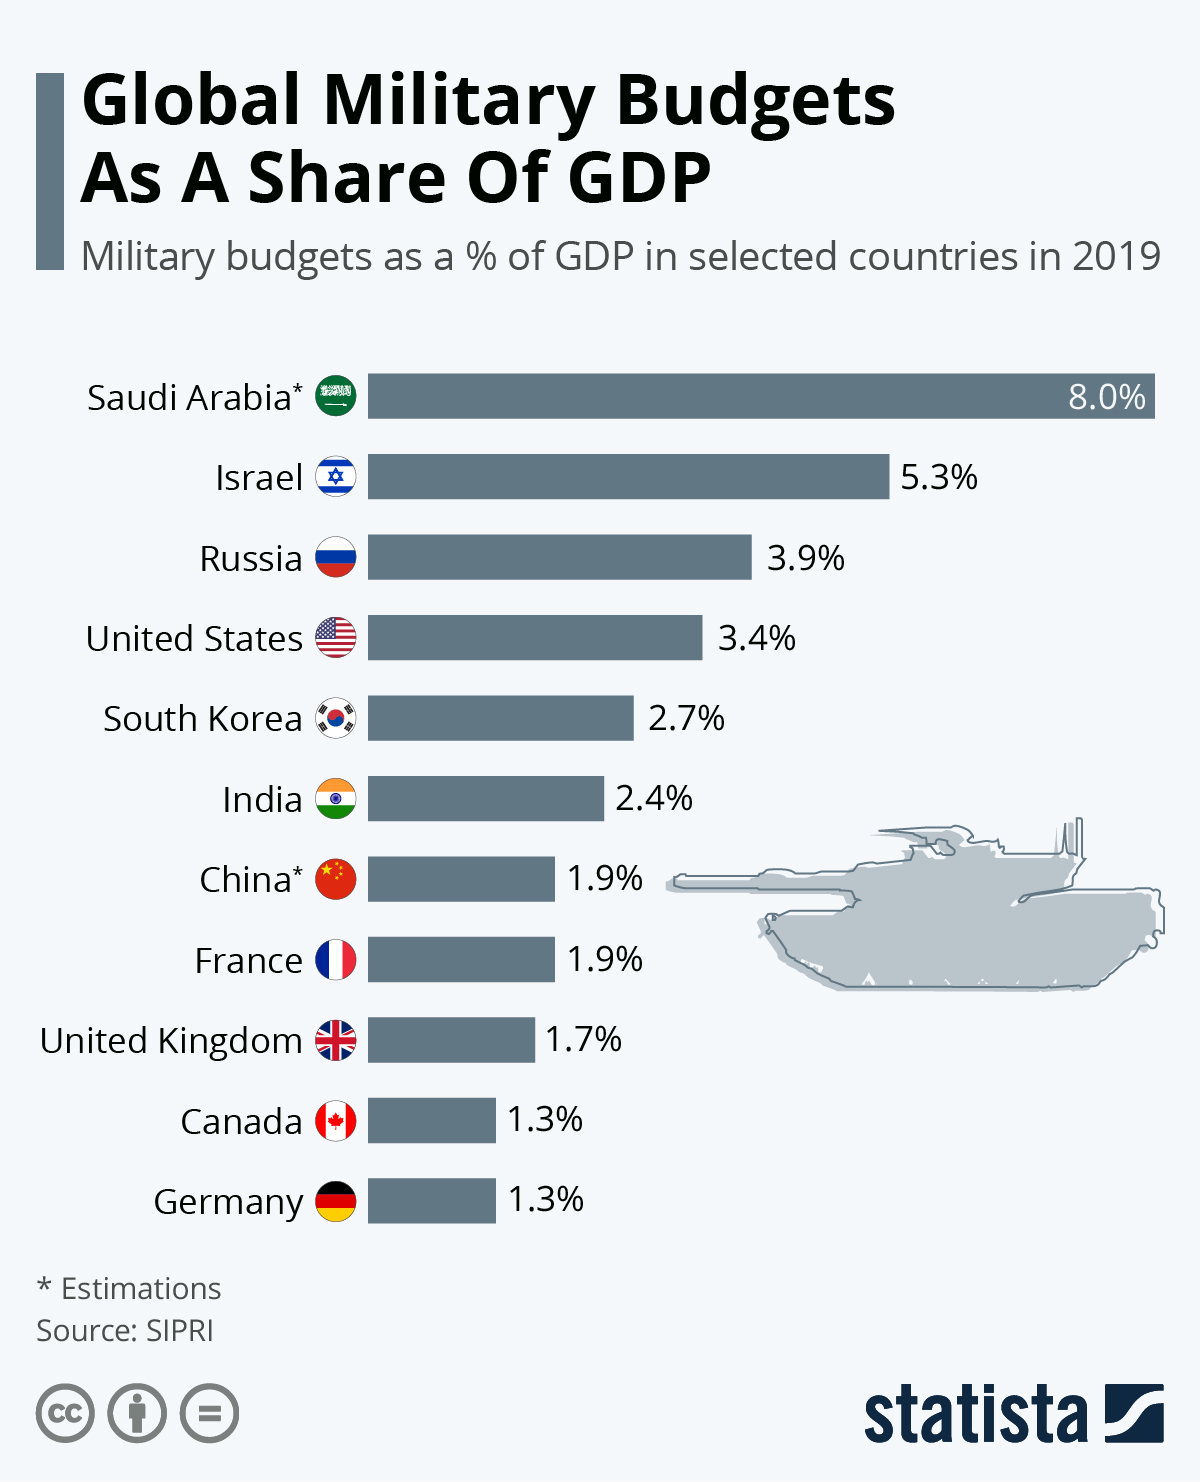 The Biggest Military Budgets As A Share Of GDP